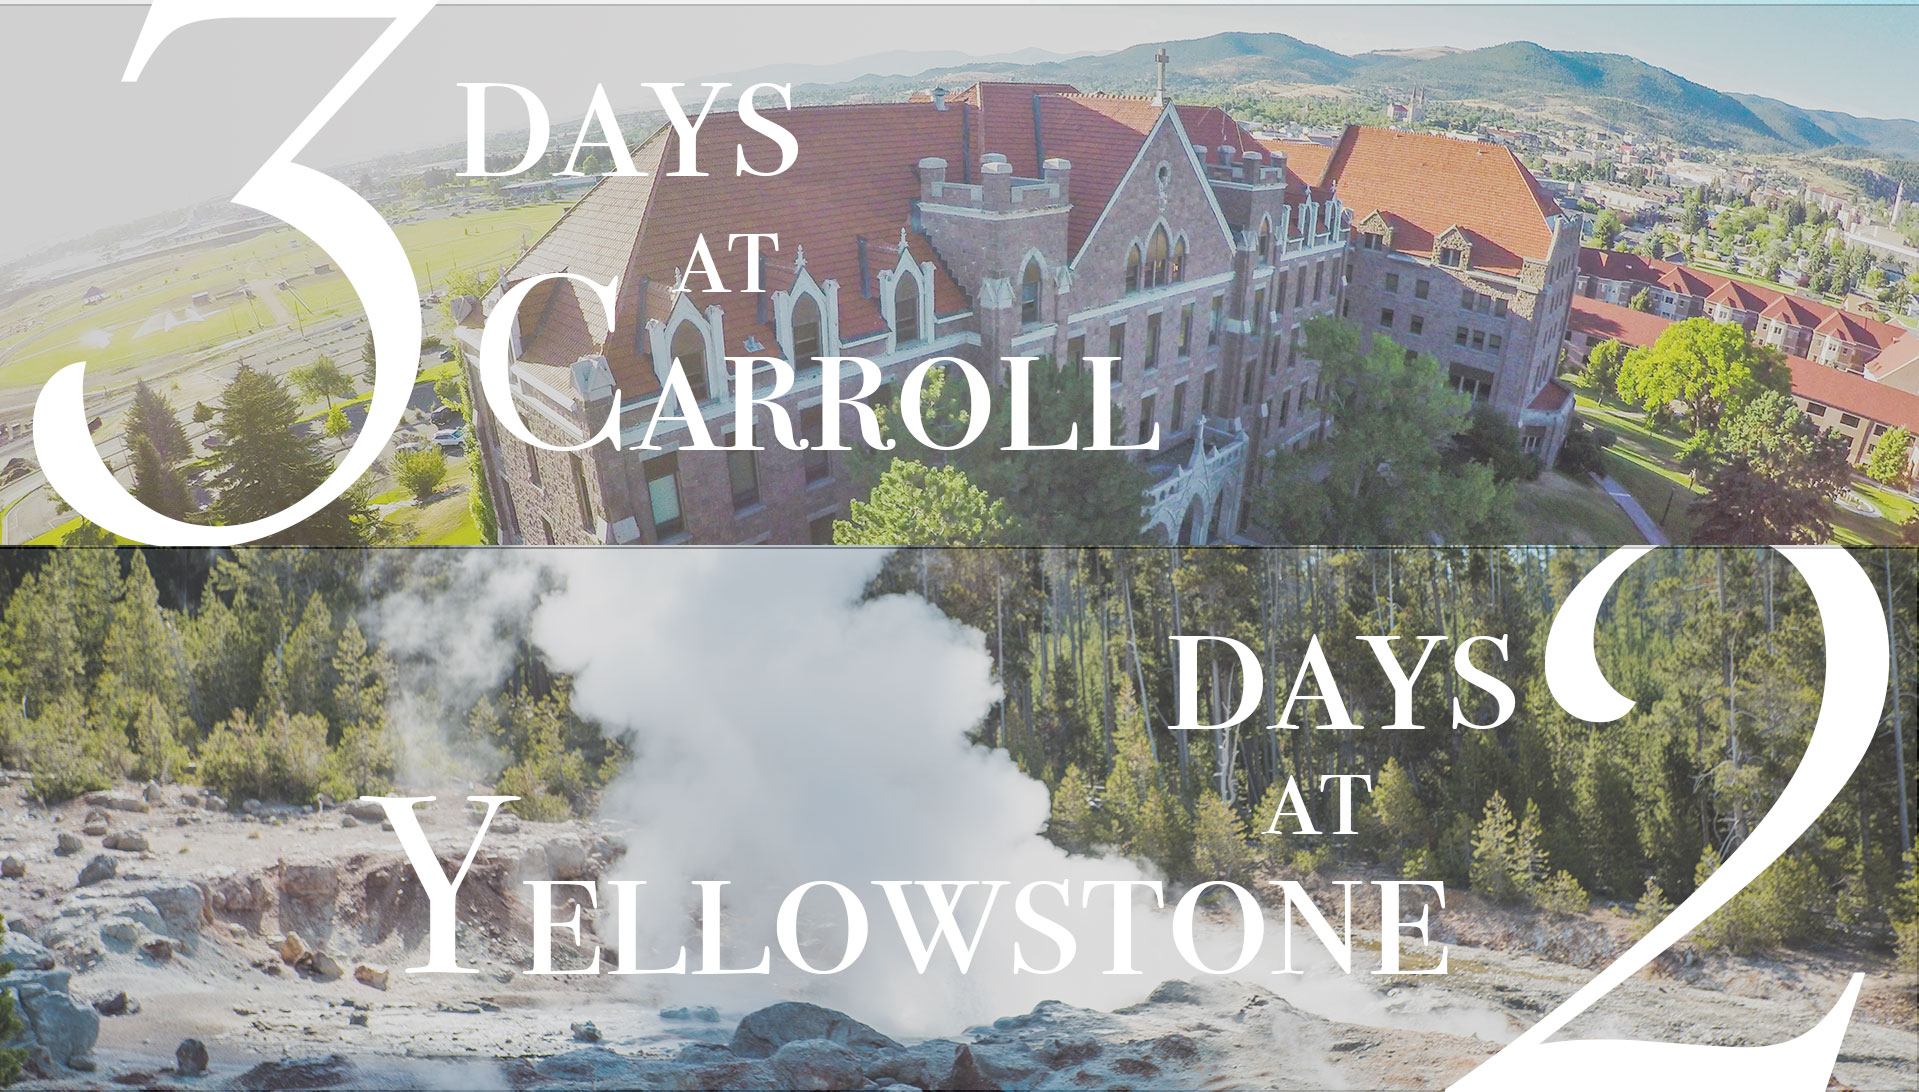 4 Days at Carroll, 3 Days at Yellowstone